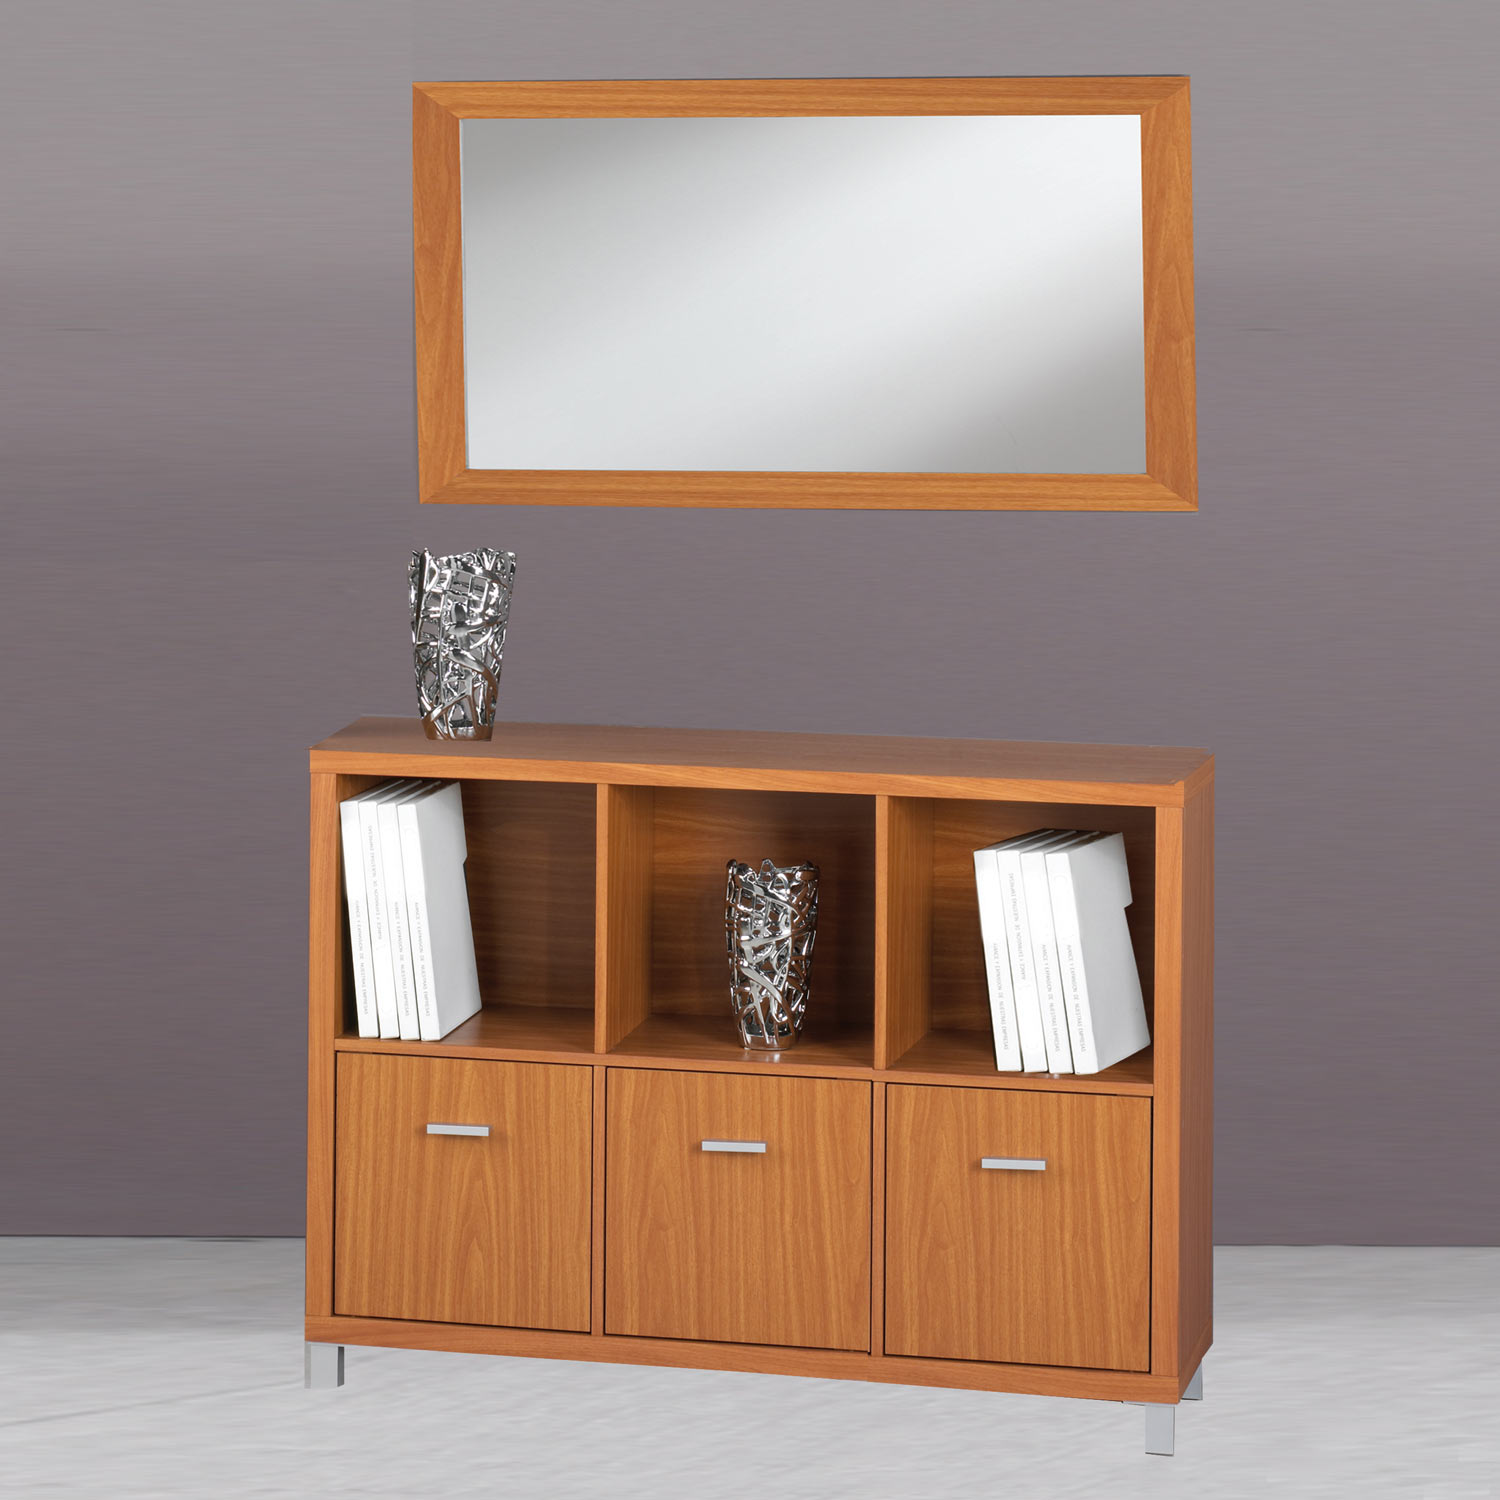 Estanter a verona 2 baldas 3 puertas cherry muebles for Muebles color cerezo baratos